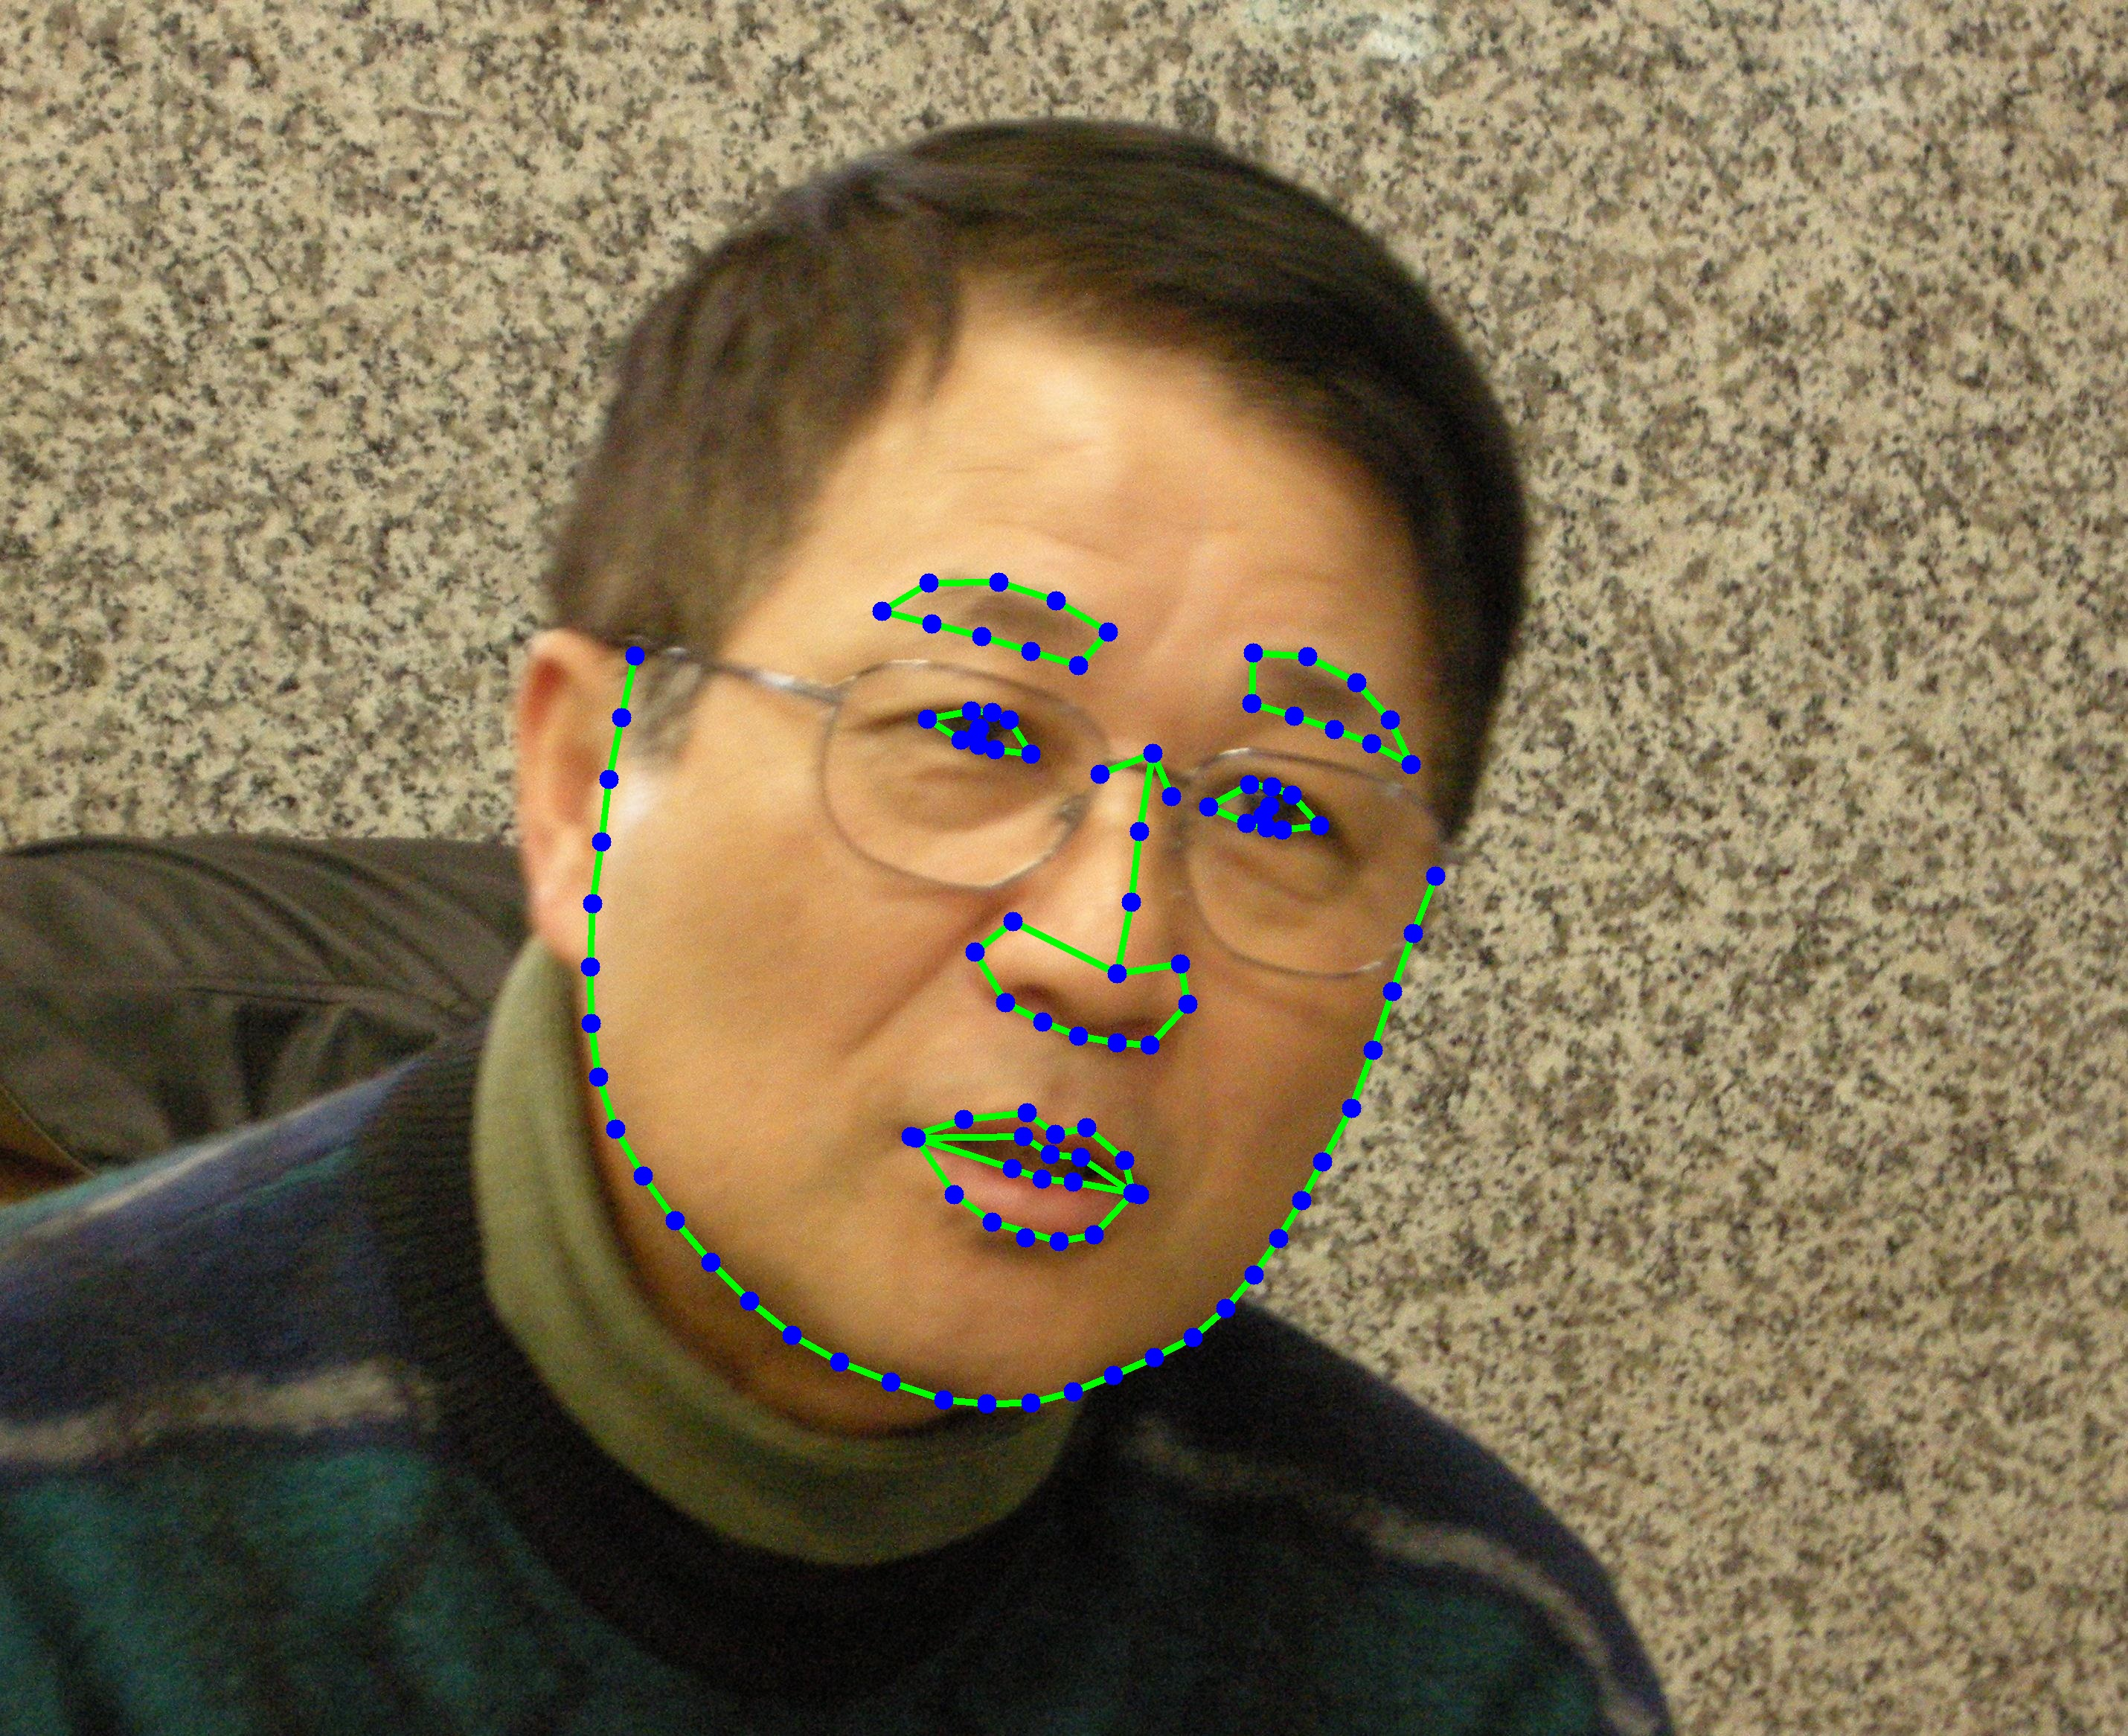 62,320 Images of 106 Facial Landmarks Annotation Data_Data Products_Datatang